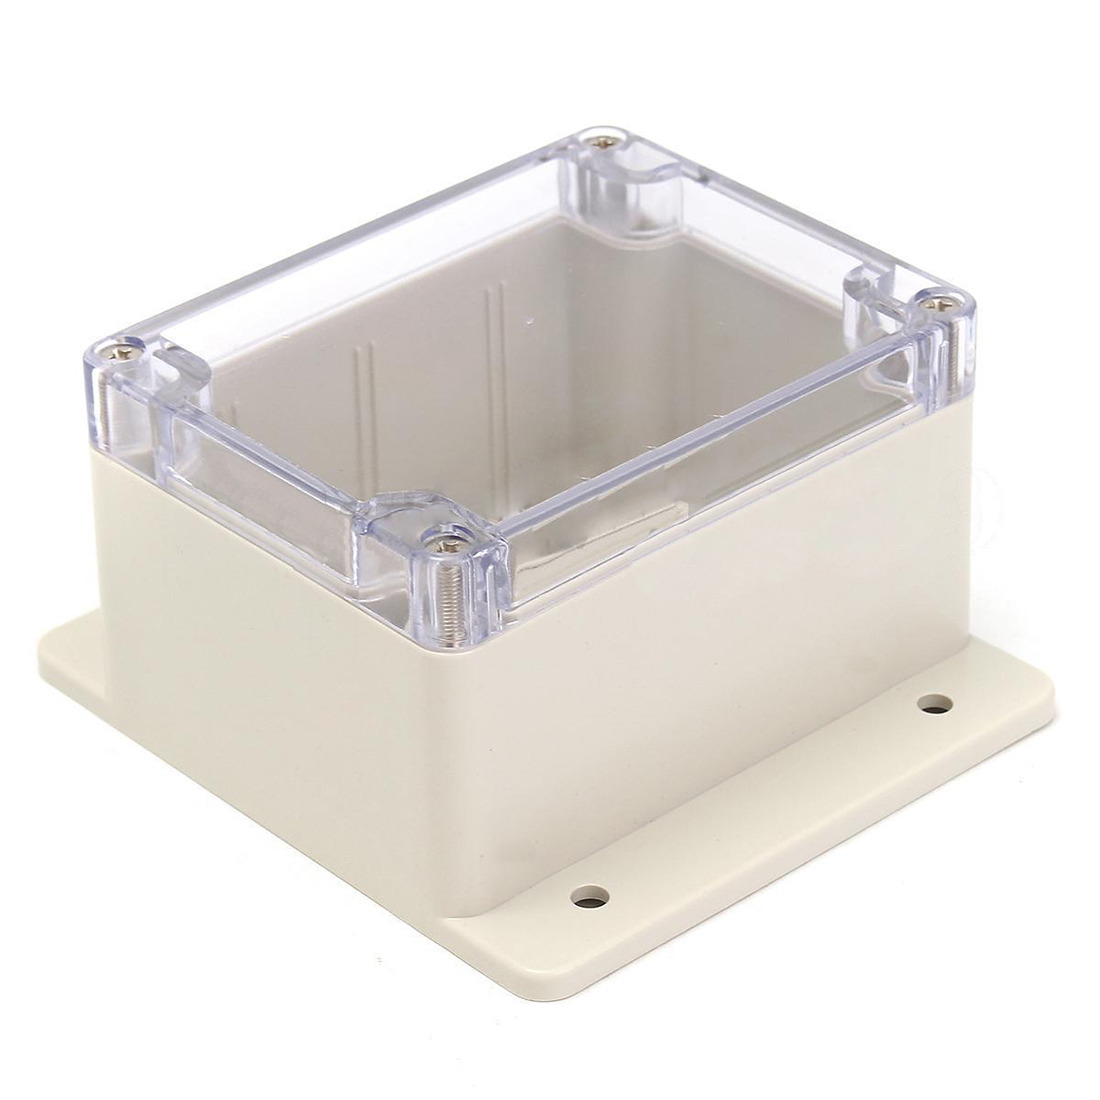 Waterproof Plastic Electronic Junction Project Box Enclosure Case 115x90x68mm electronic enclosure project box 1 pcs 204 143 78mm plastic waterproof enclosure instrument box electronical junction box